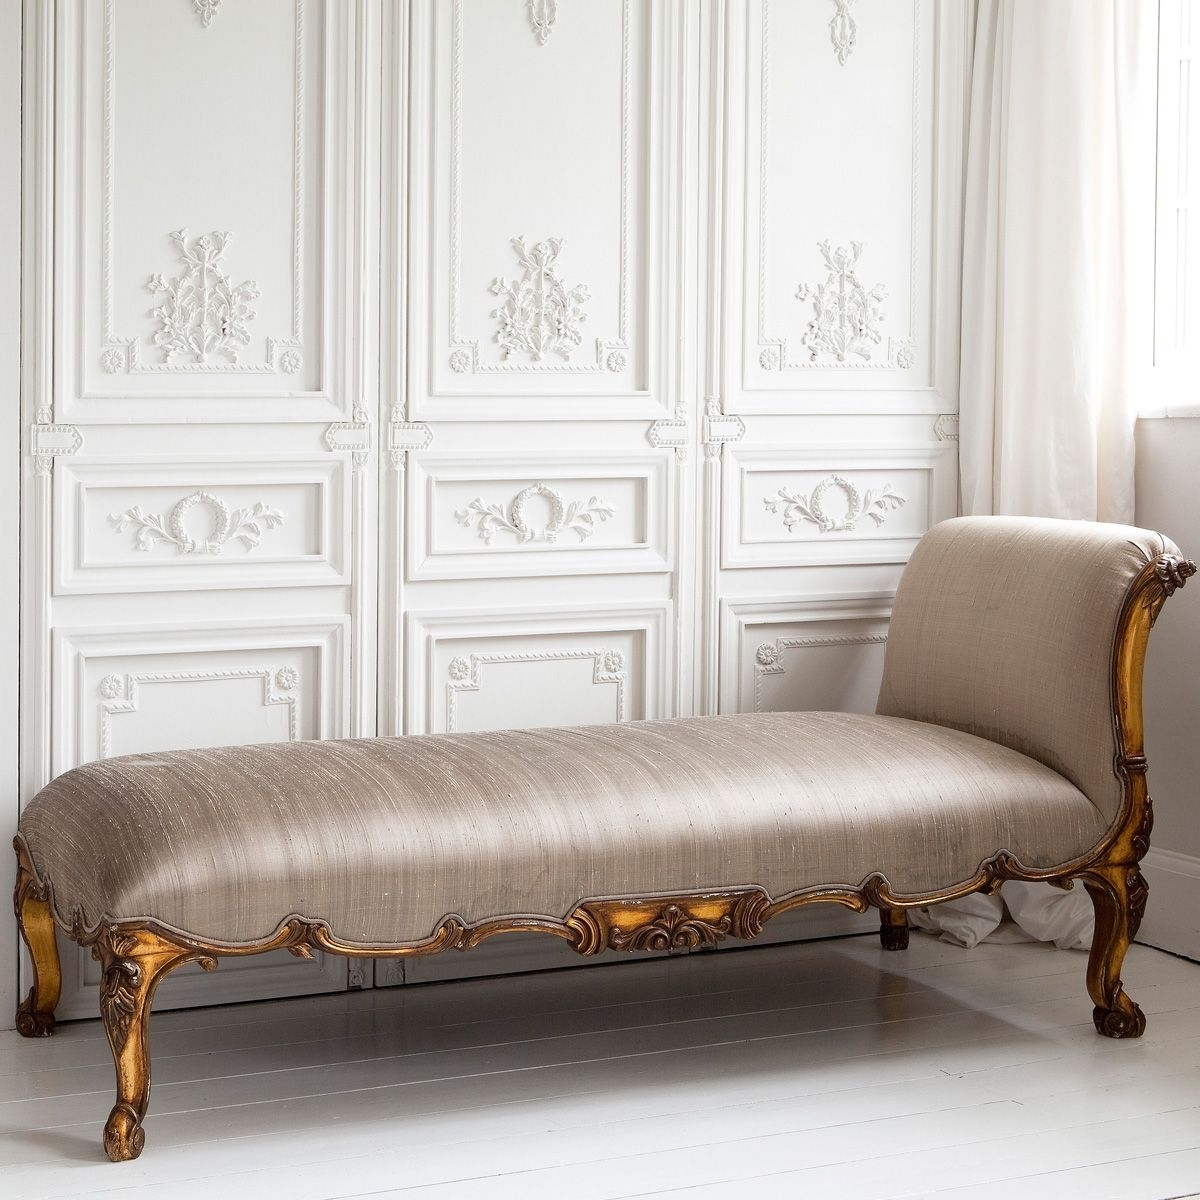 Versailles Gold Chaise Loungethe French Bedroom Company Pertaining To Newest Chaises For Bedroom (View 3 of 15)